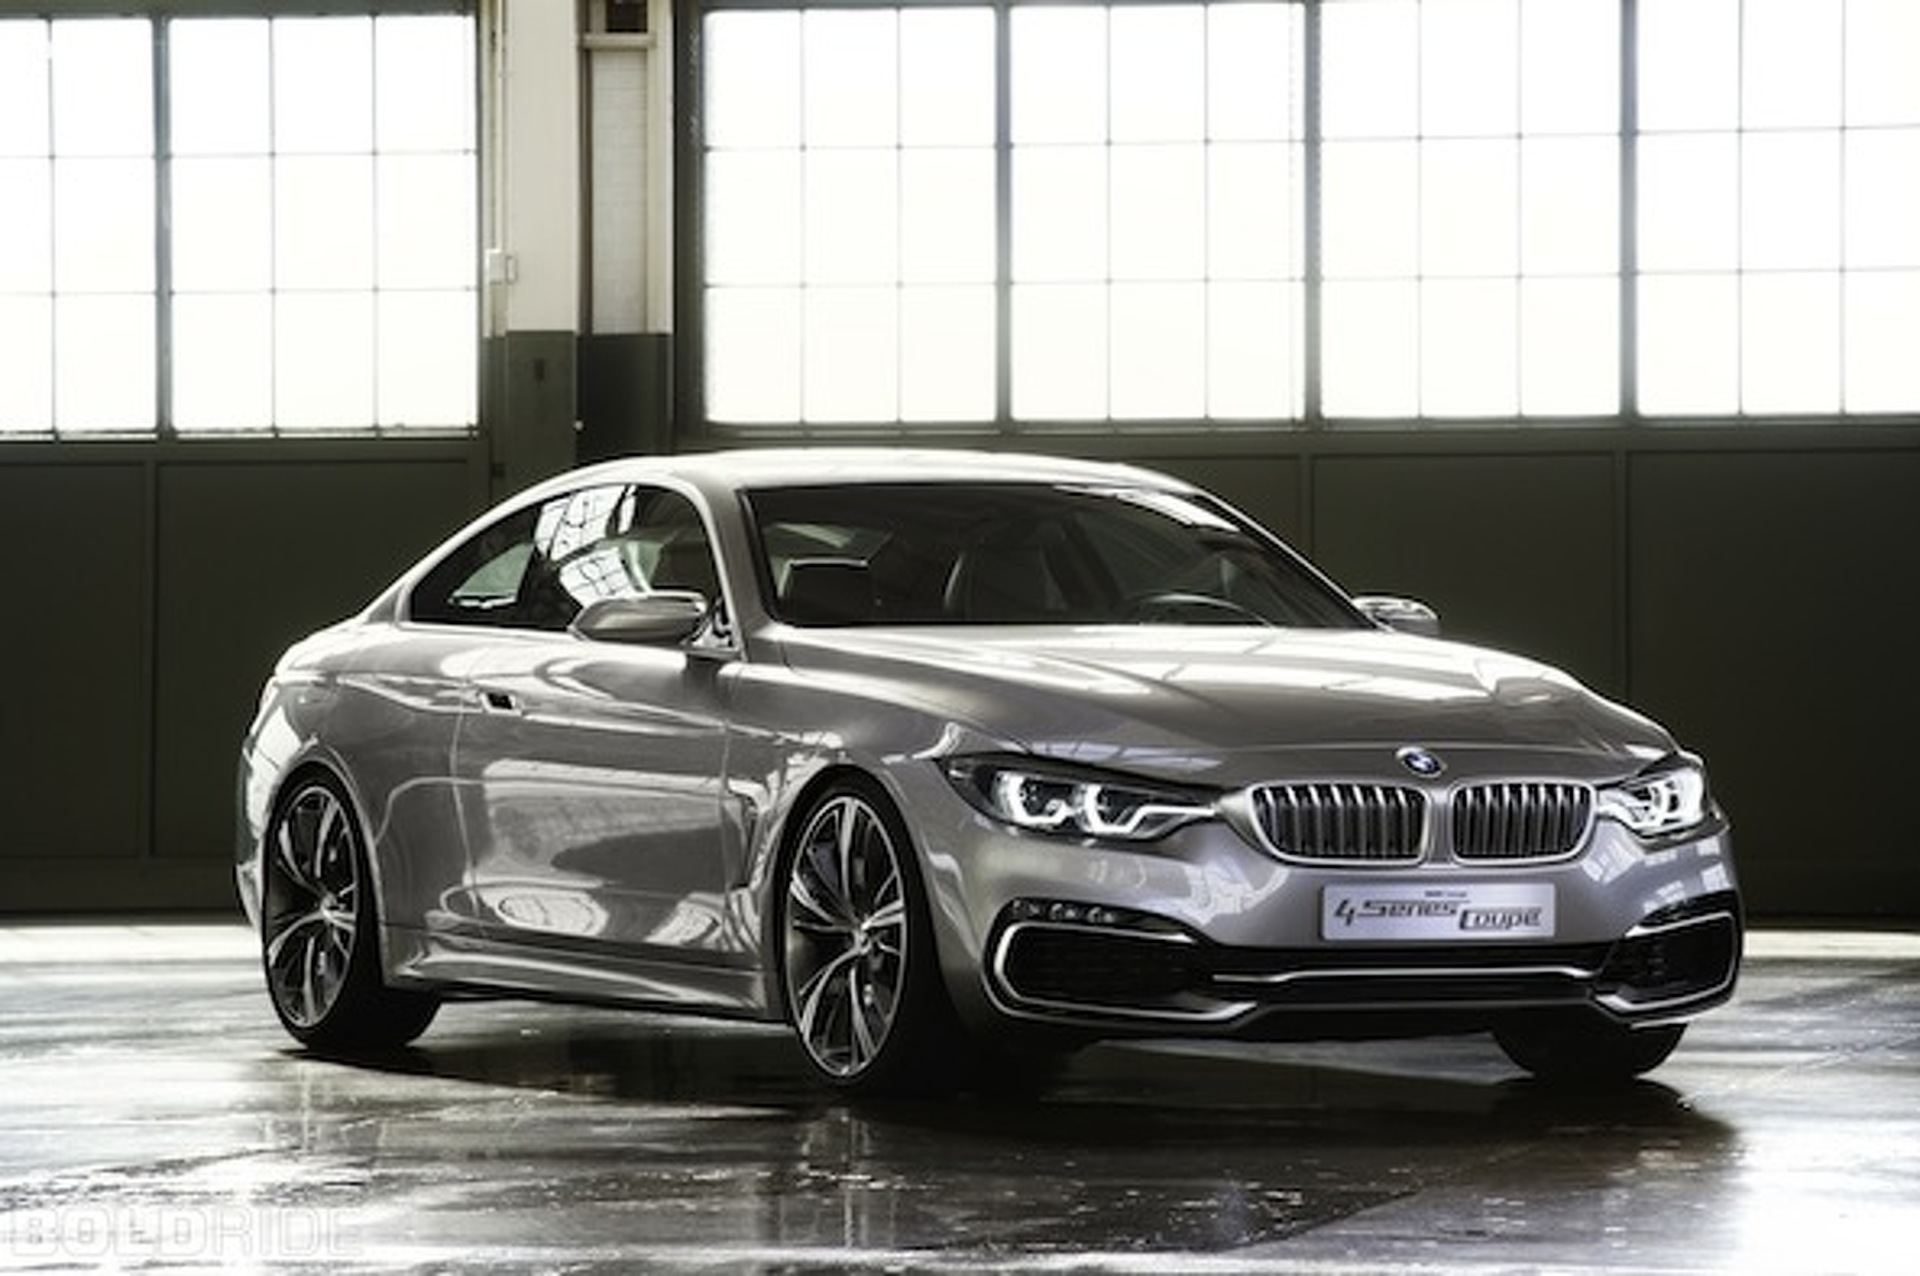 12 Cars of Christmas: BMW 4-Series Coupe Concept